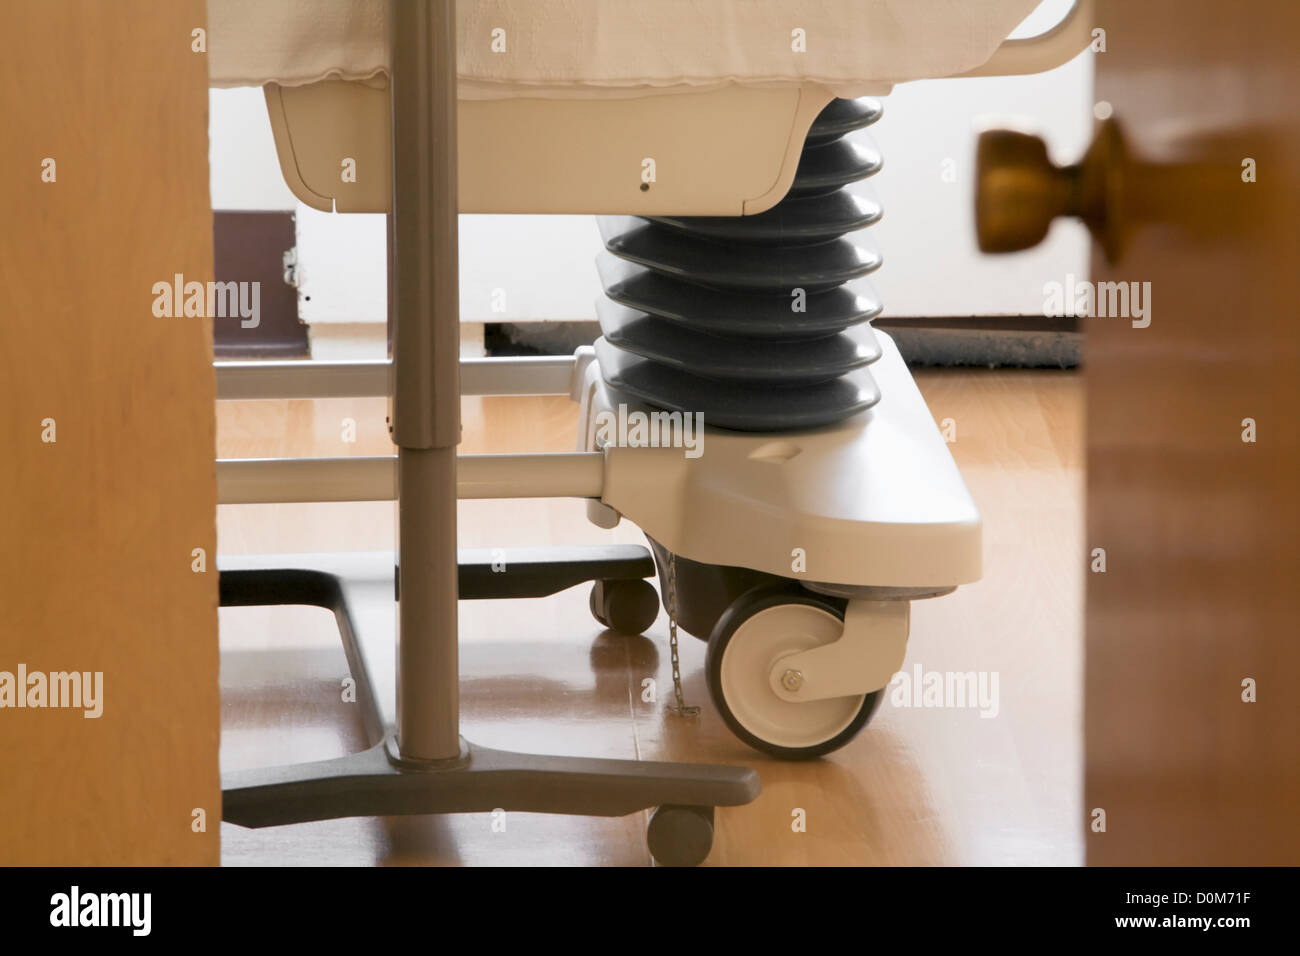 Detail of Wheels and Undercarriage of Hospital Bed - Stock Image